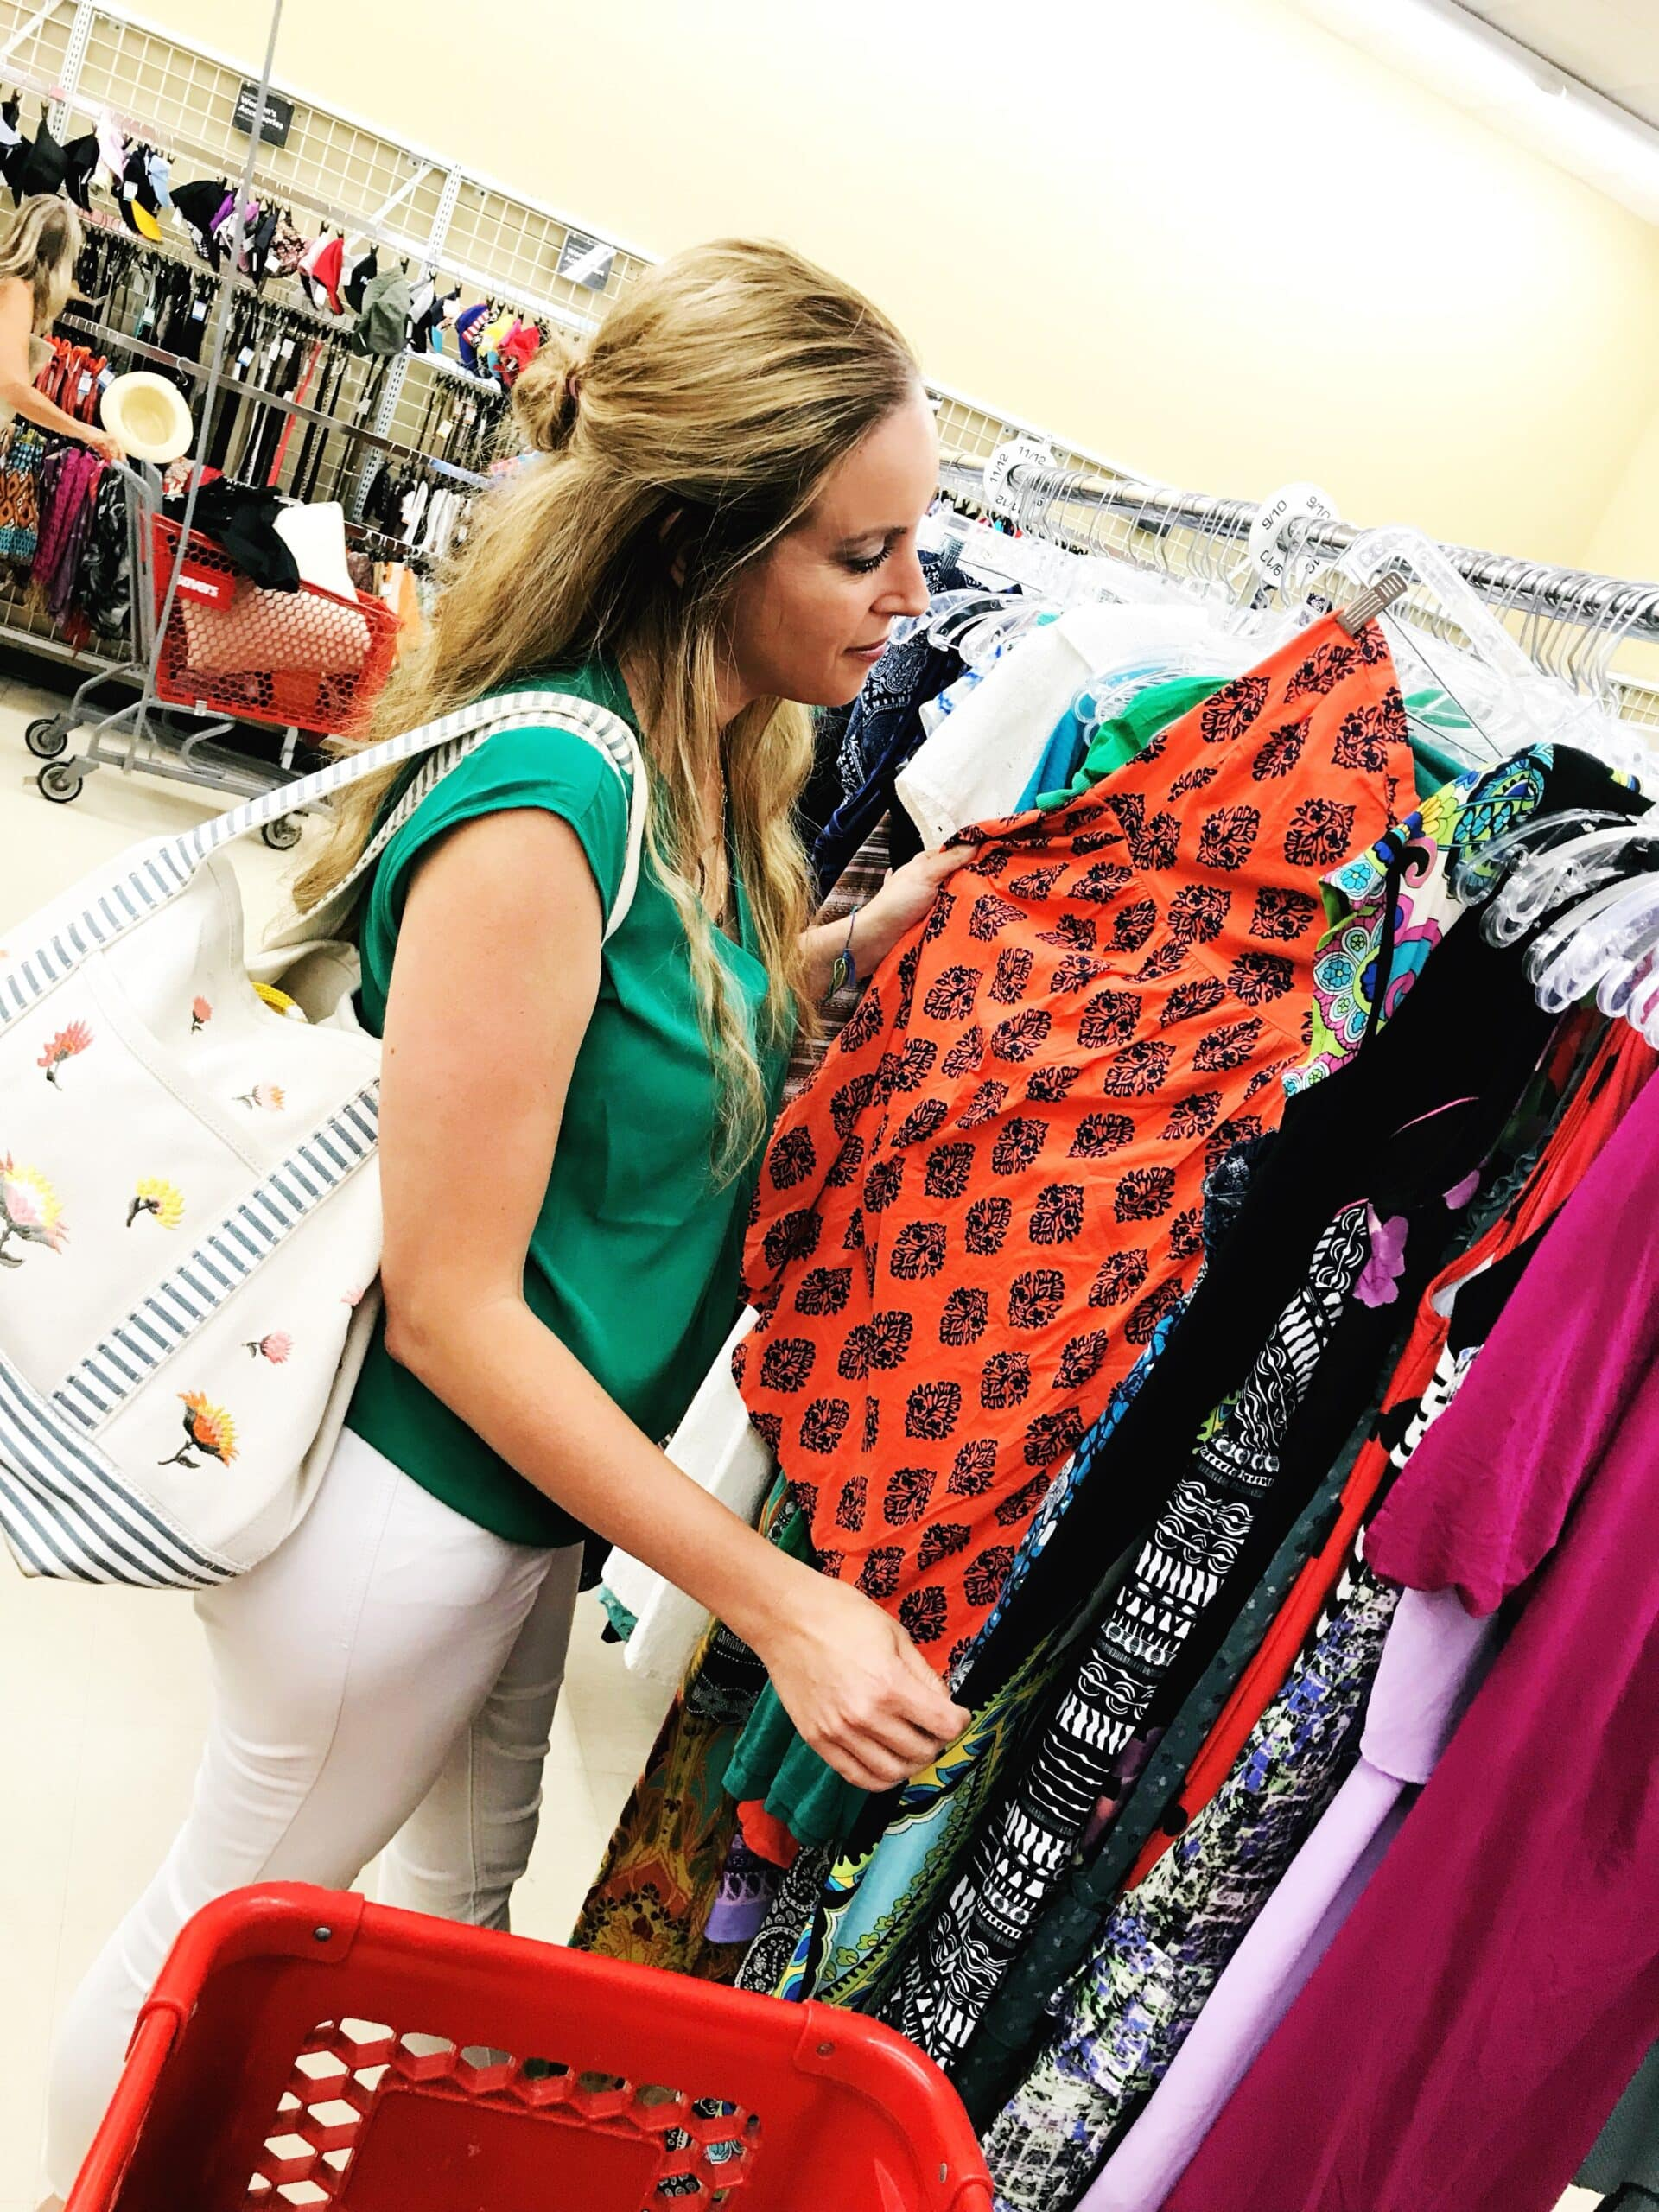 Chic Finds At Savers For Less